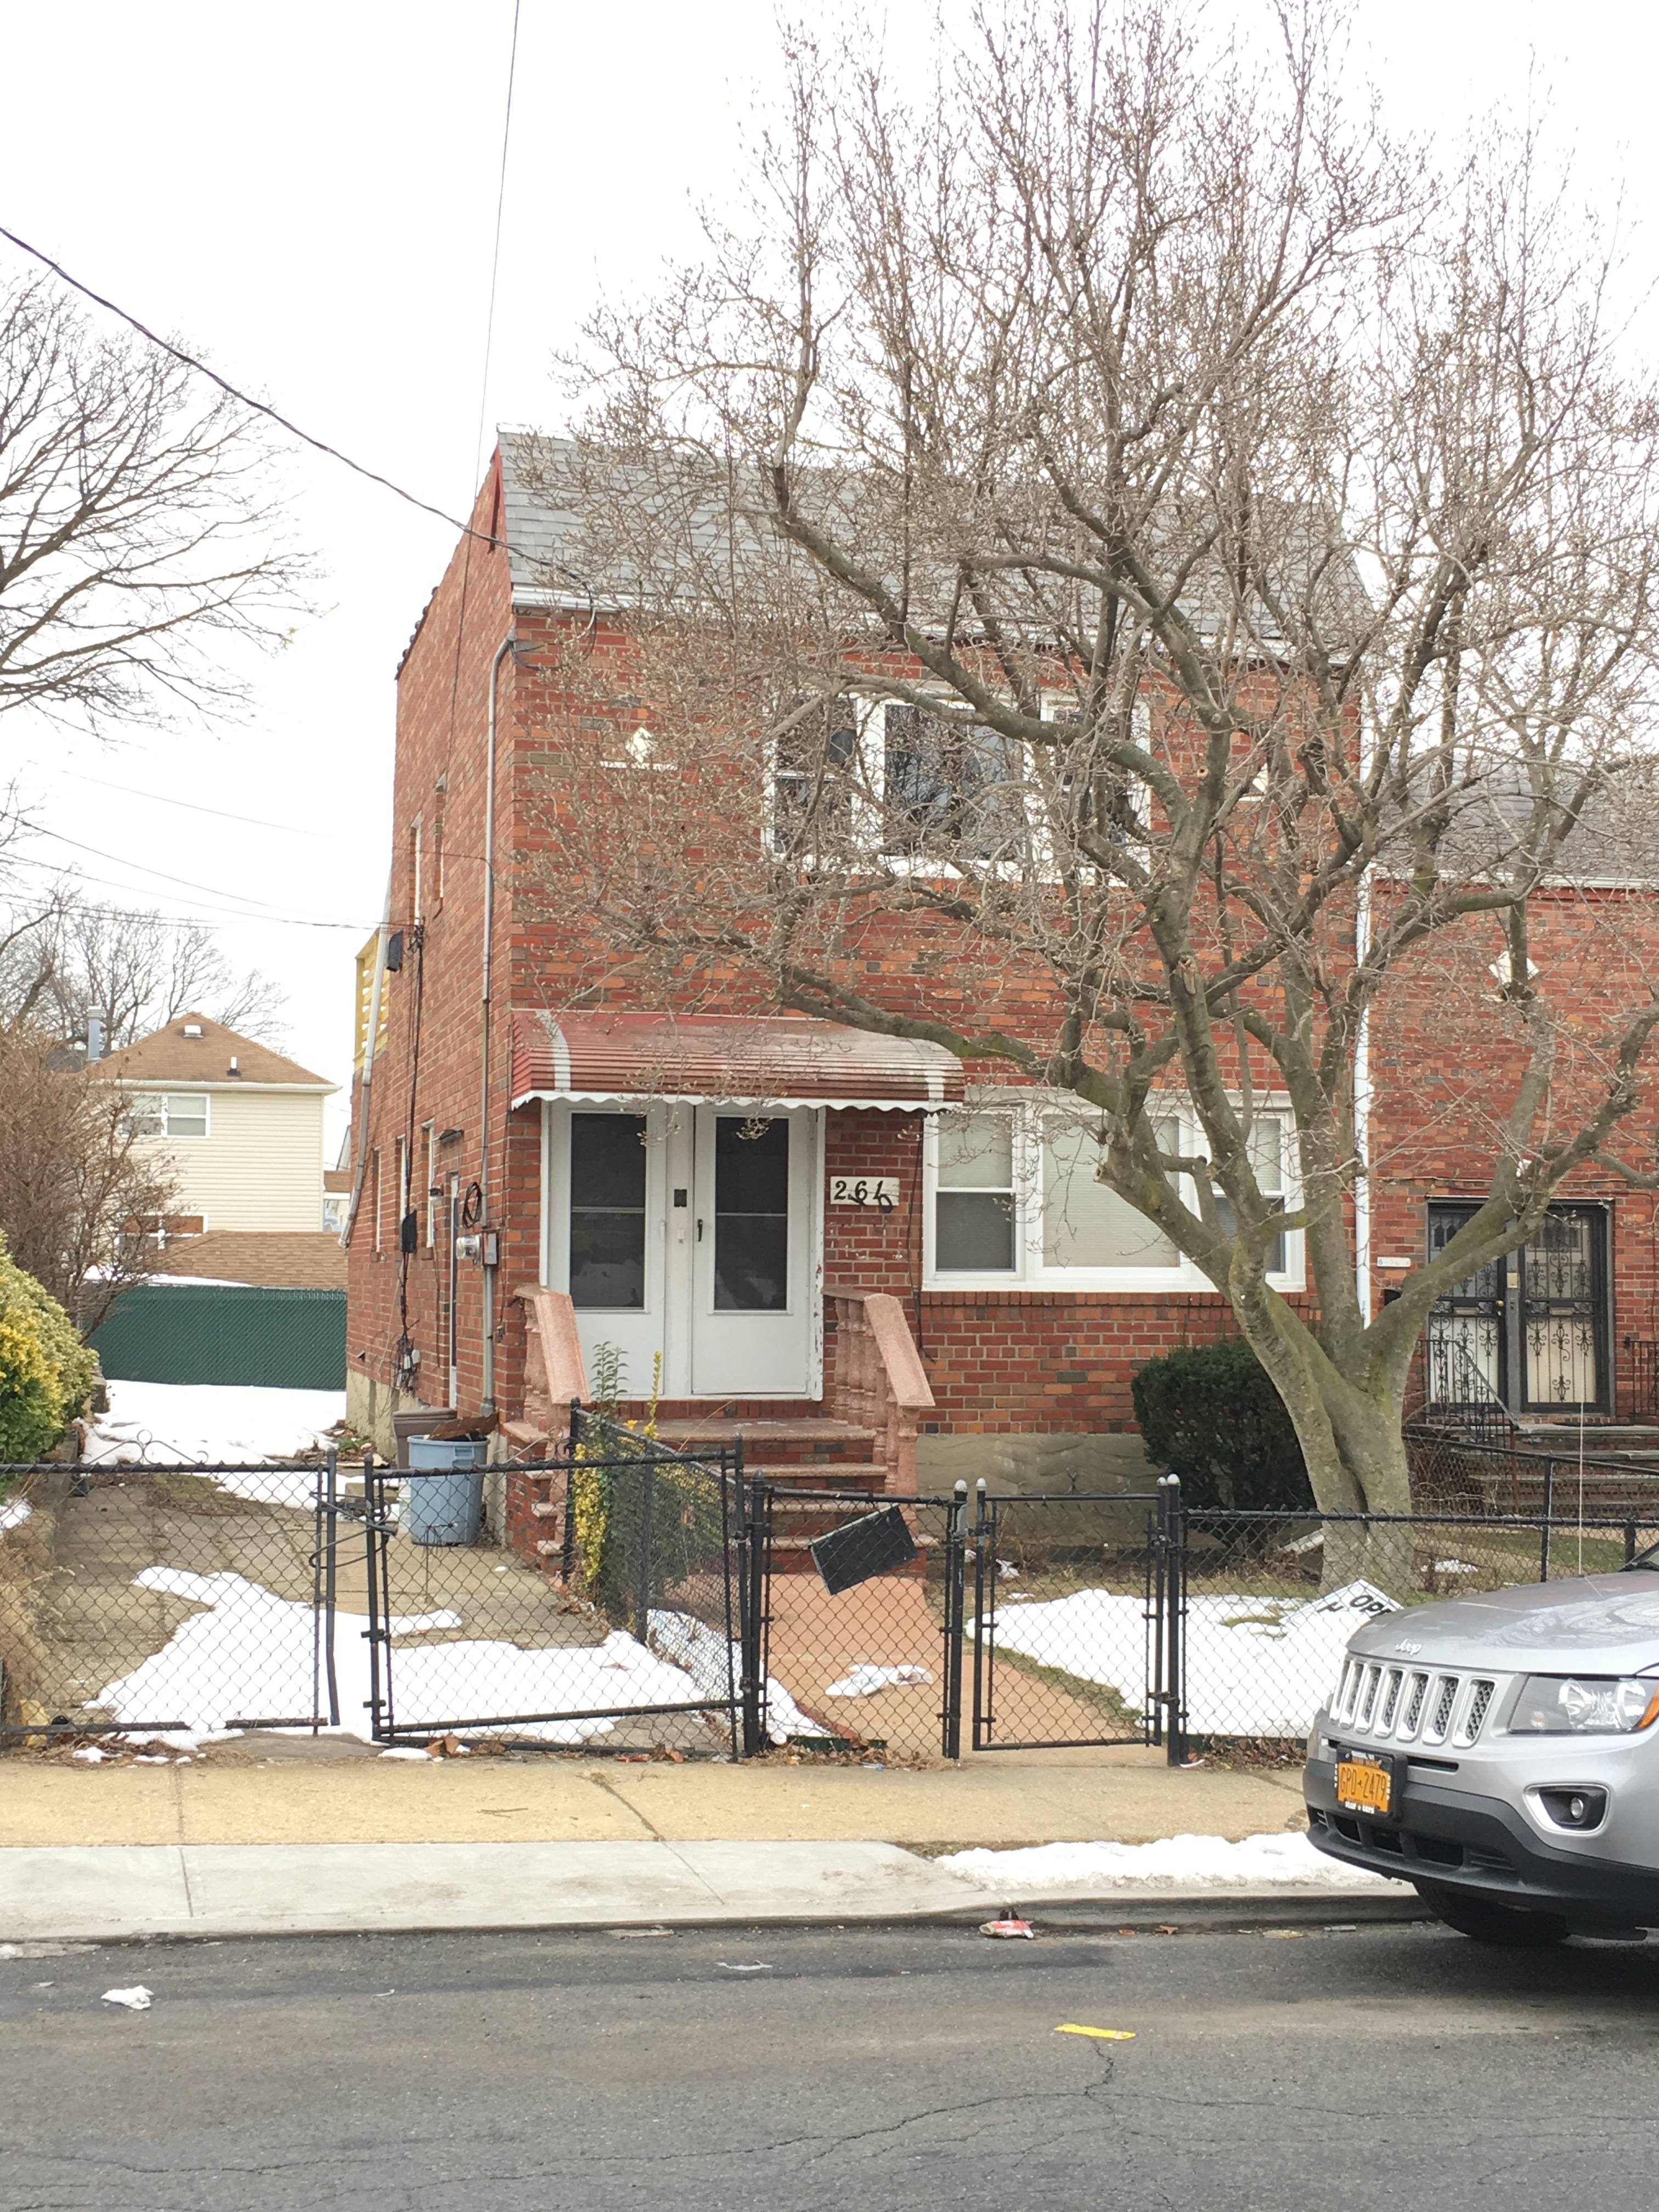 216 10 136th ave springfield gardens ny 11413 homes brooklyn queens long island